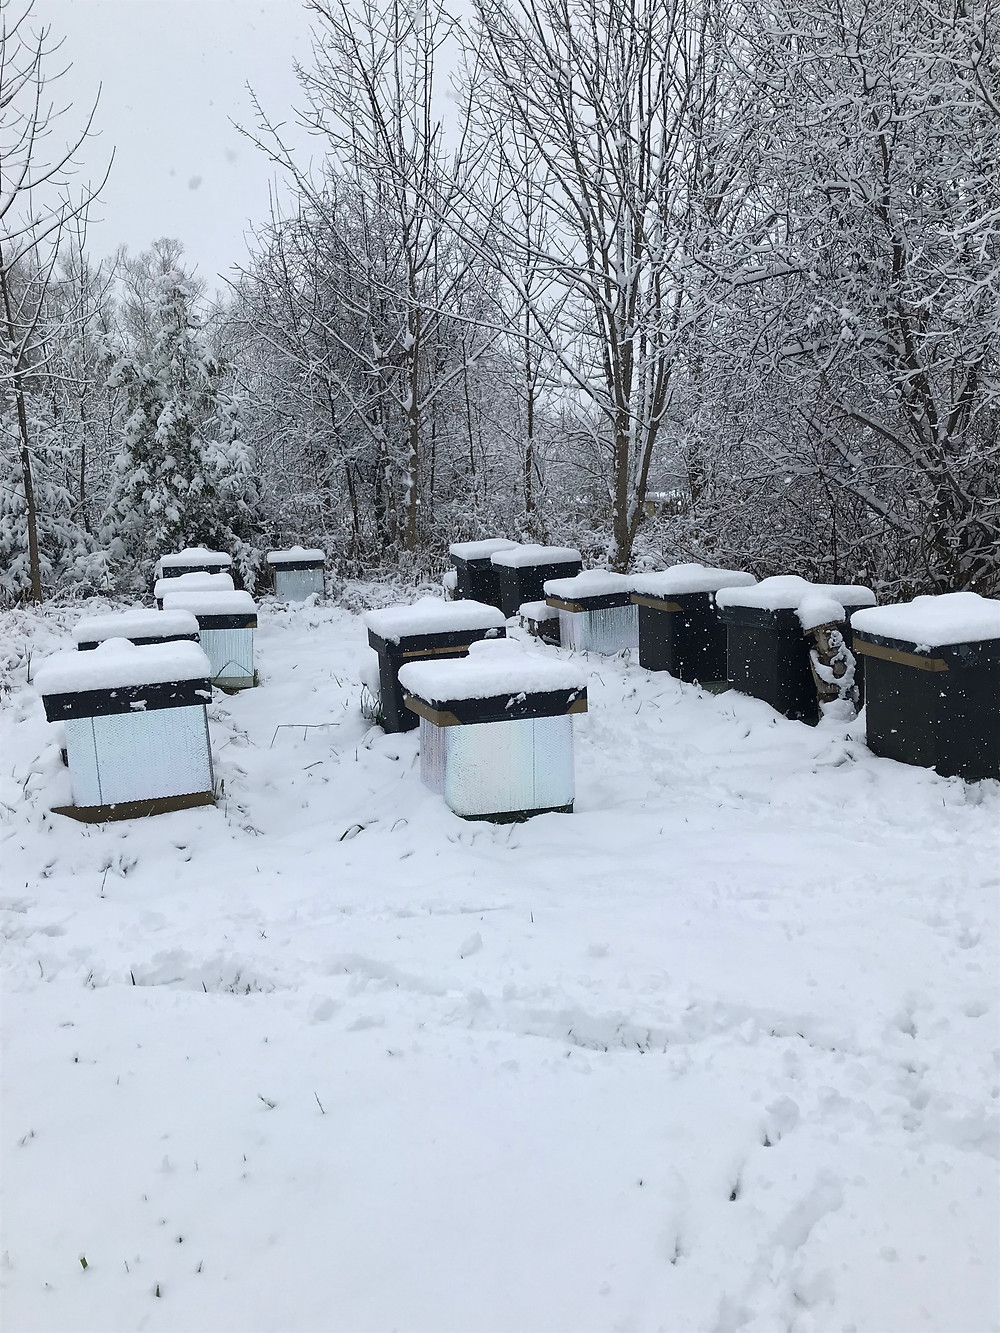 As you can see, the hives are starting to be covered with snow which acts as a good insulator